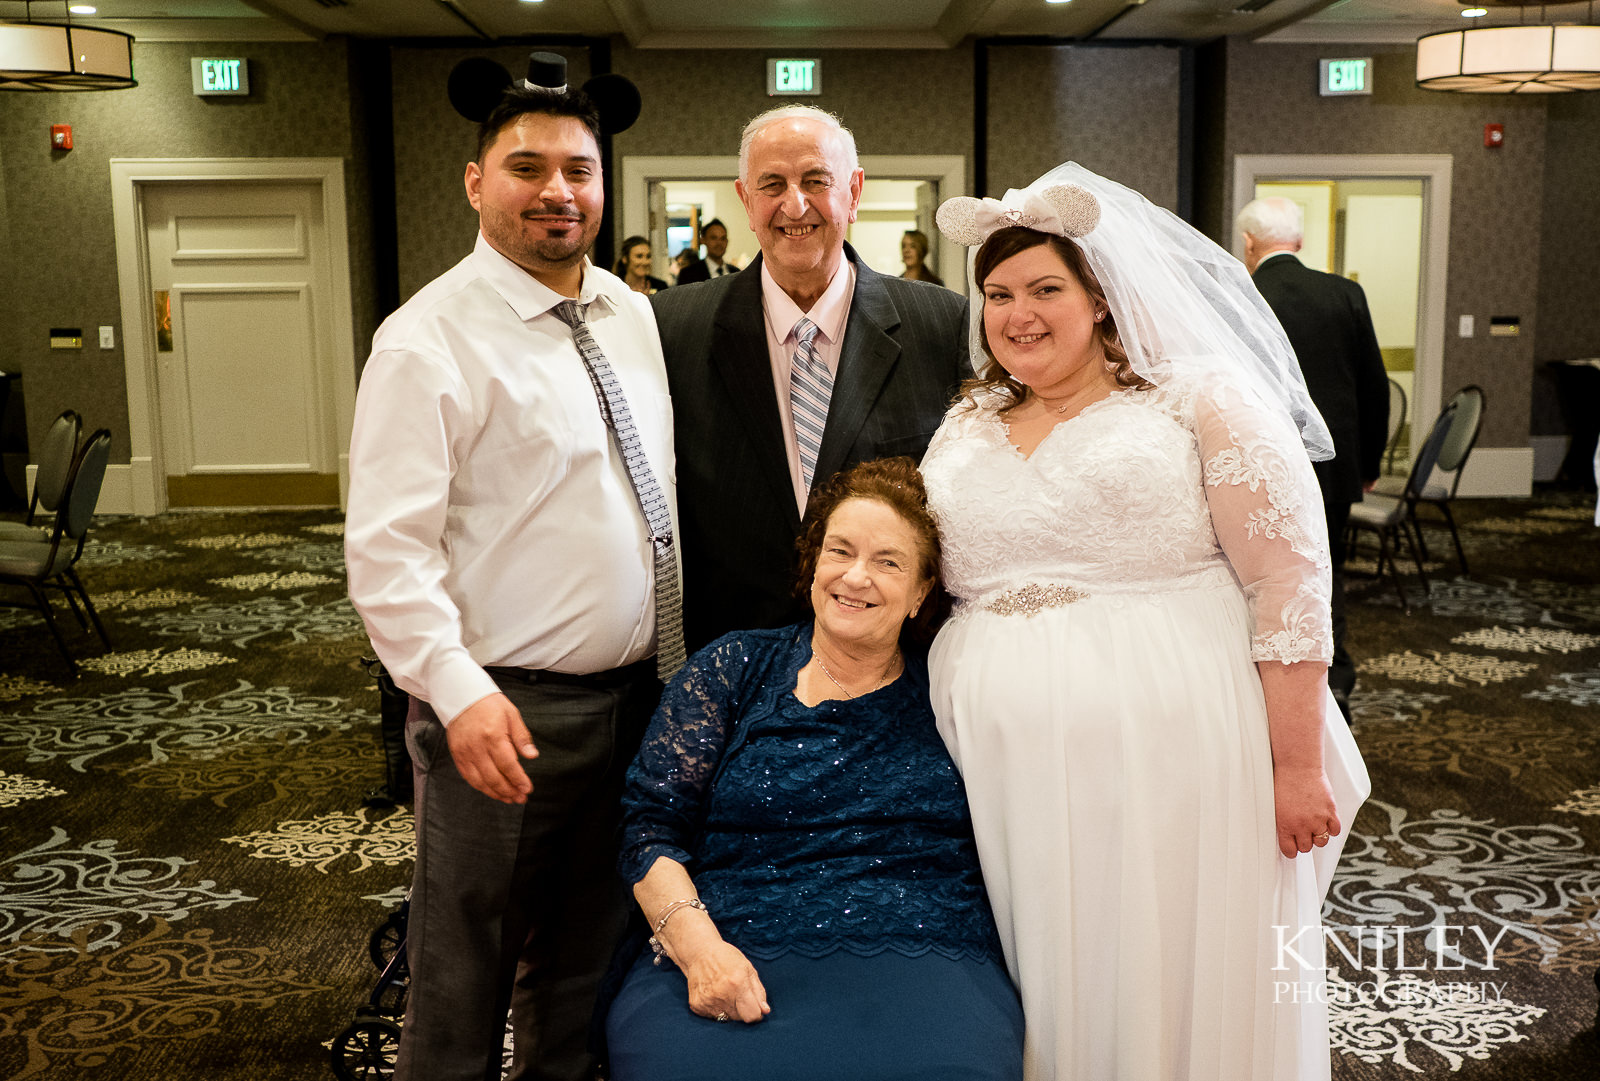 096 - Woodcliff Hotel - Rochester NY wedding photo - Kniley Photography.jpg